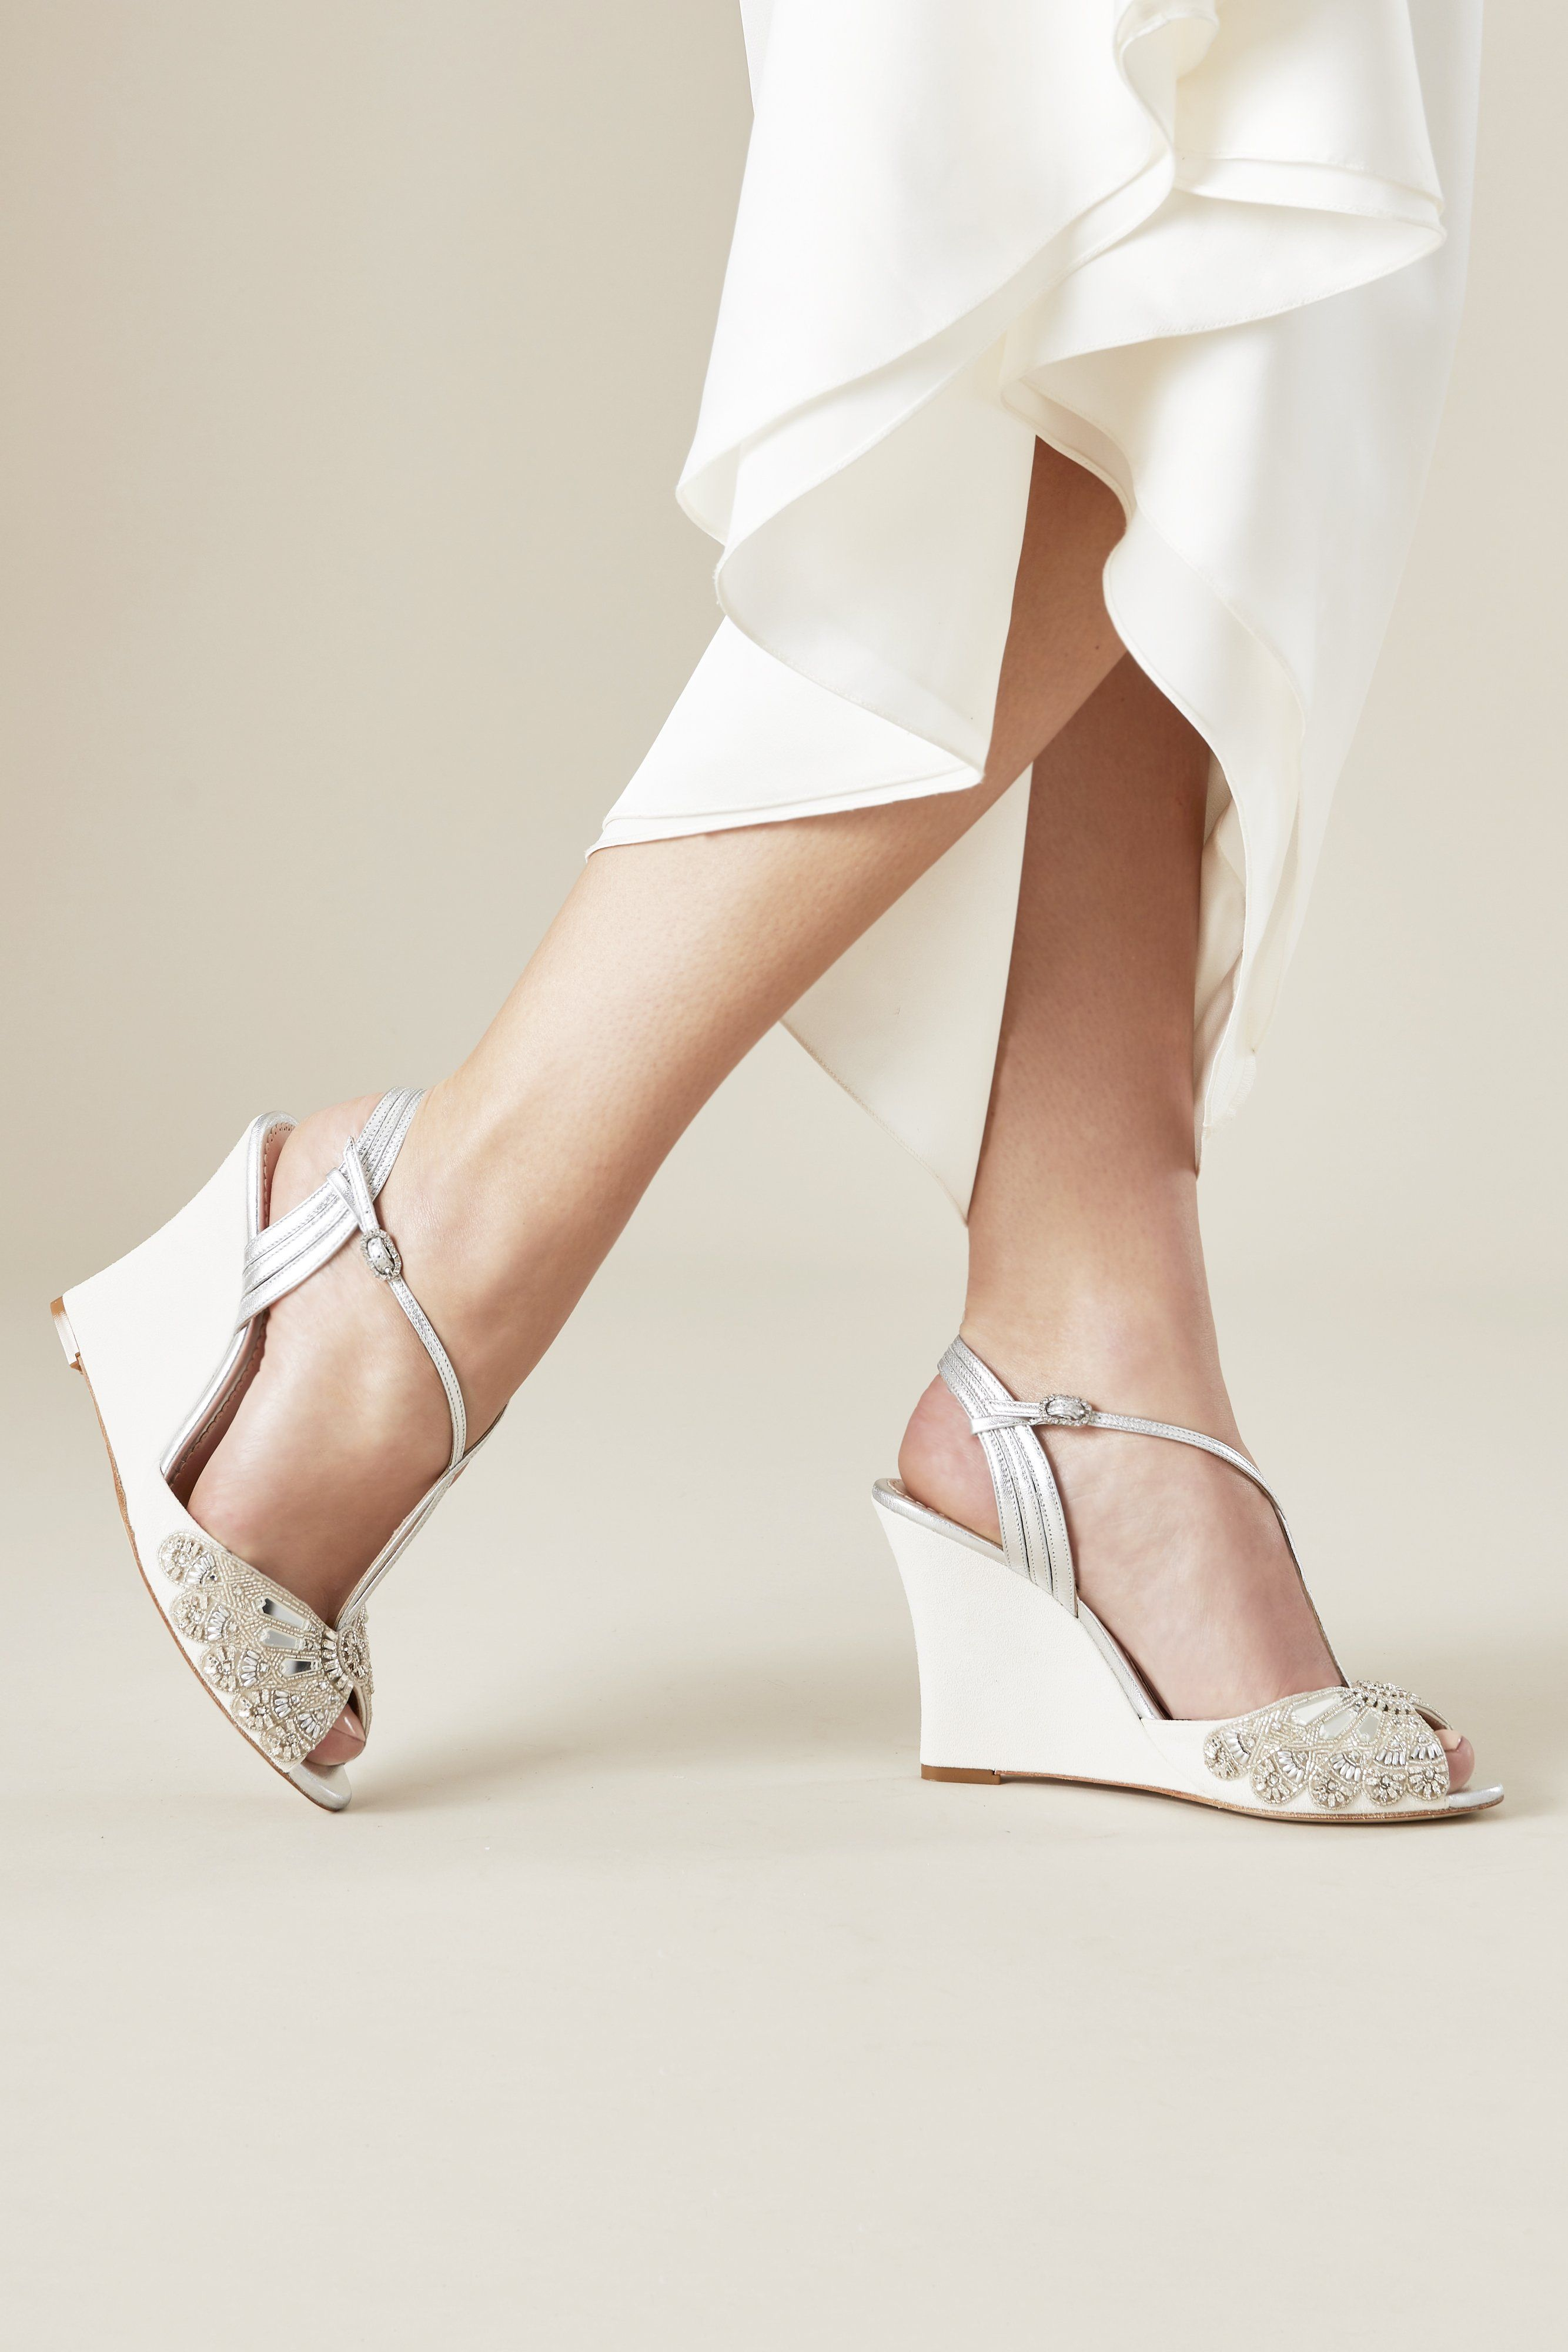 9bacddc4f Evelyn Ivory Bridal Shoes Hand Beaded Wedge Bridal Sandals by Emmy London